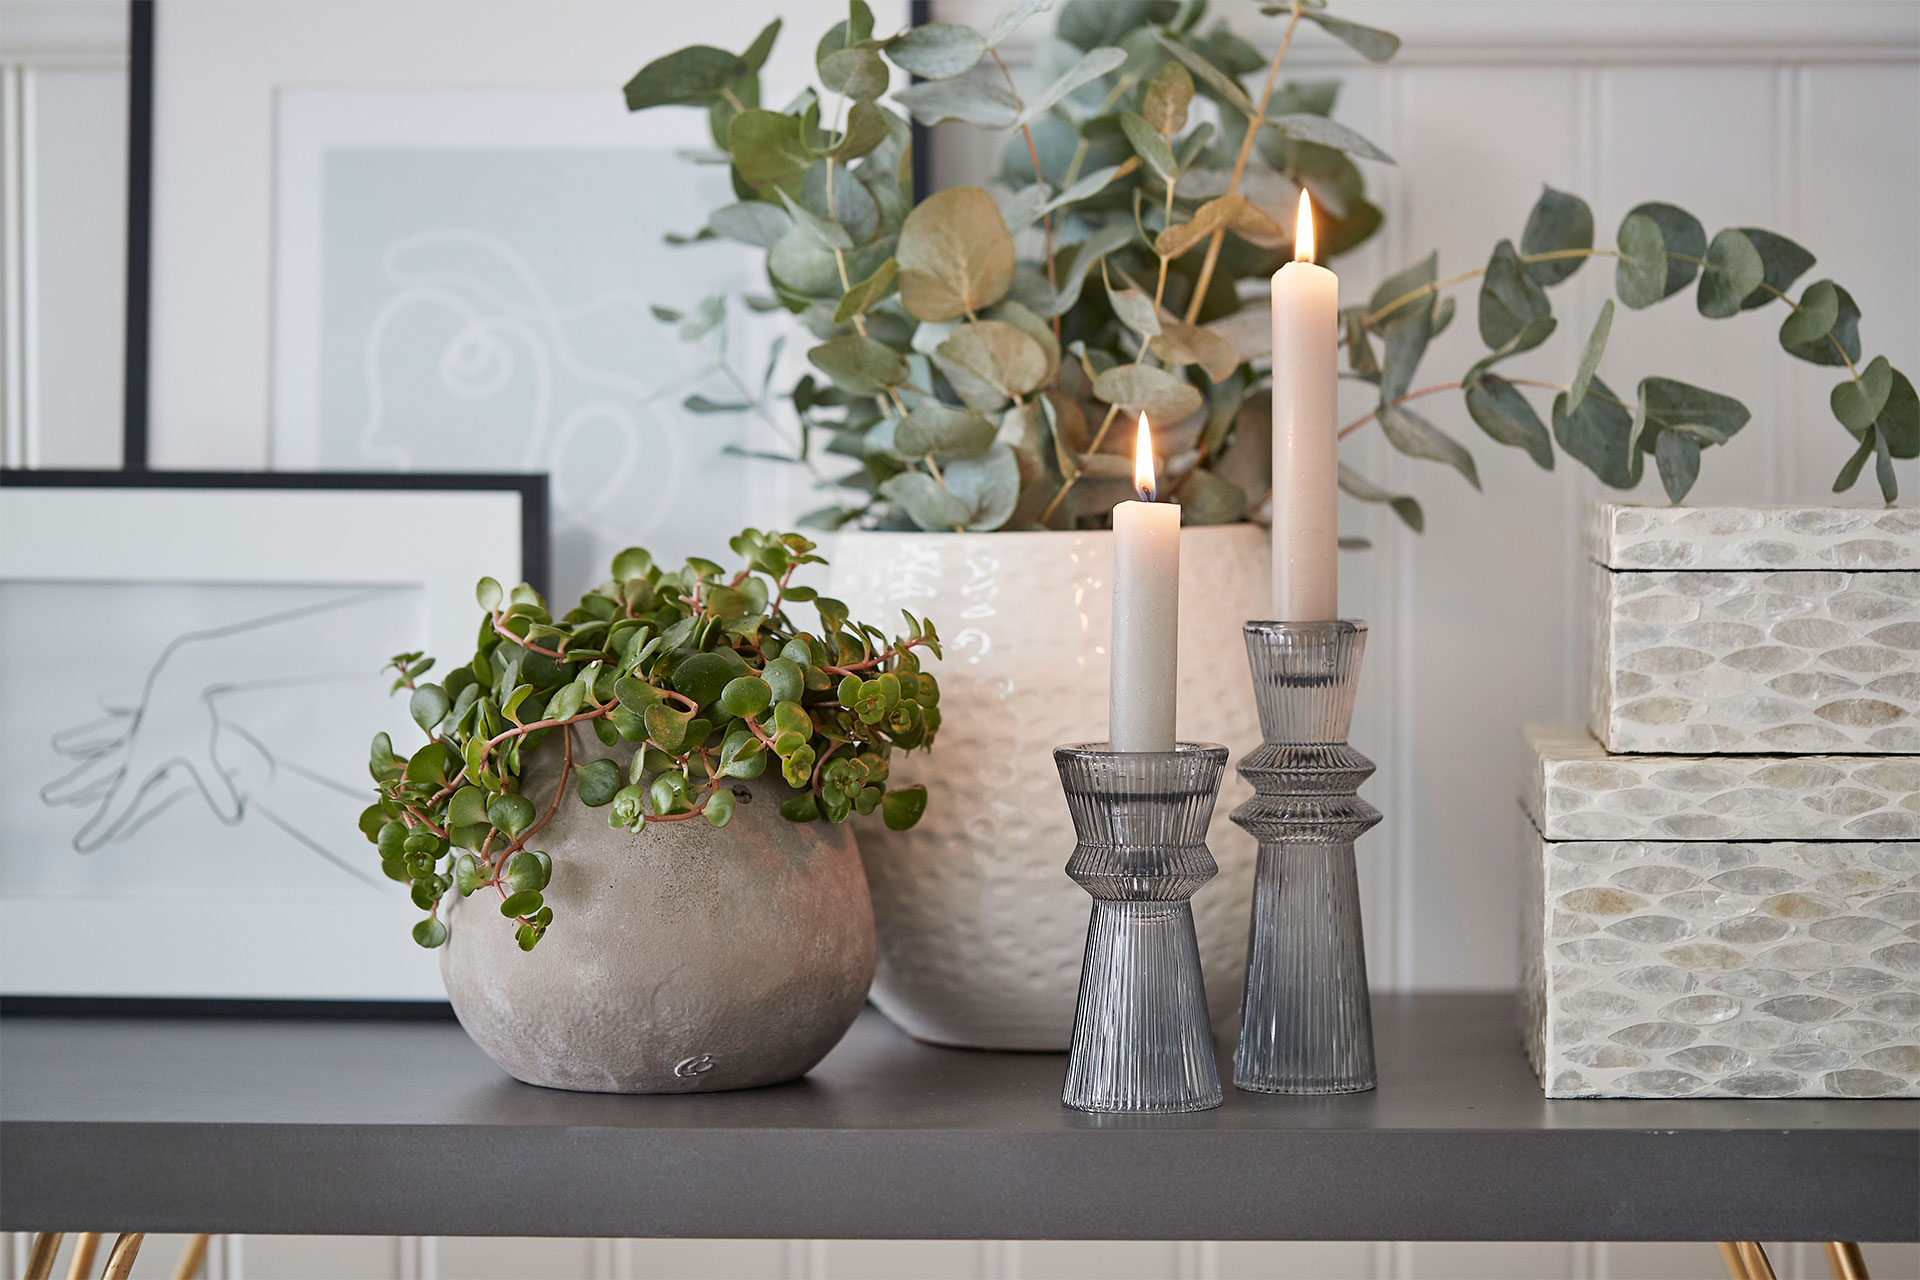 Combine handmade flower pots with candlelight from candlesticks - Lene Bjerre